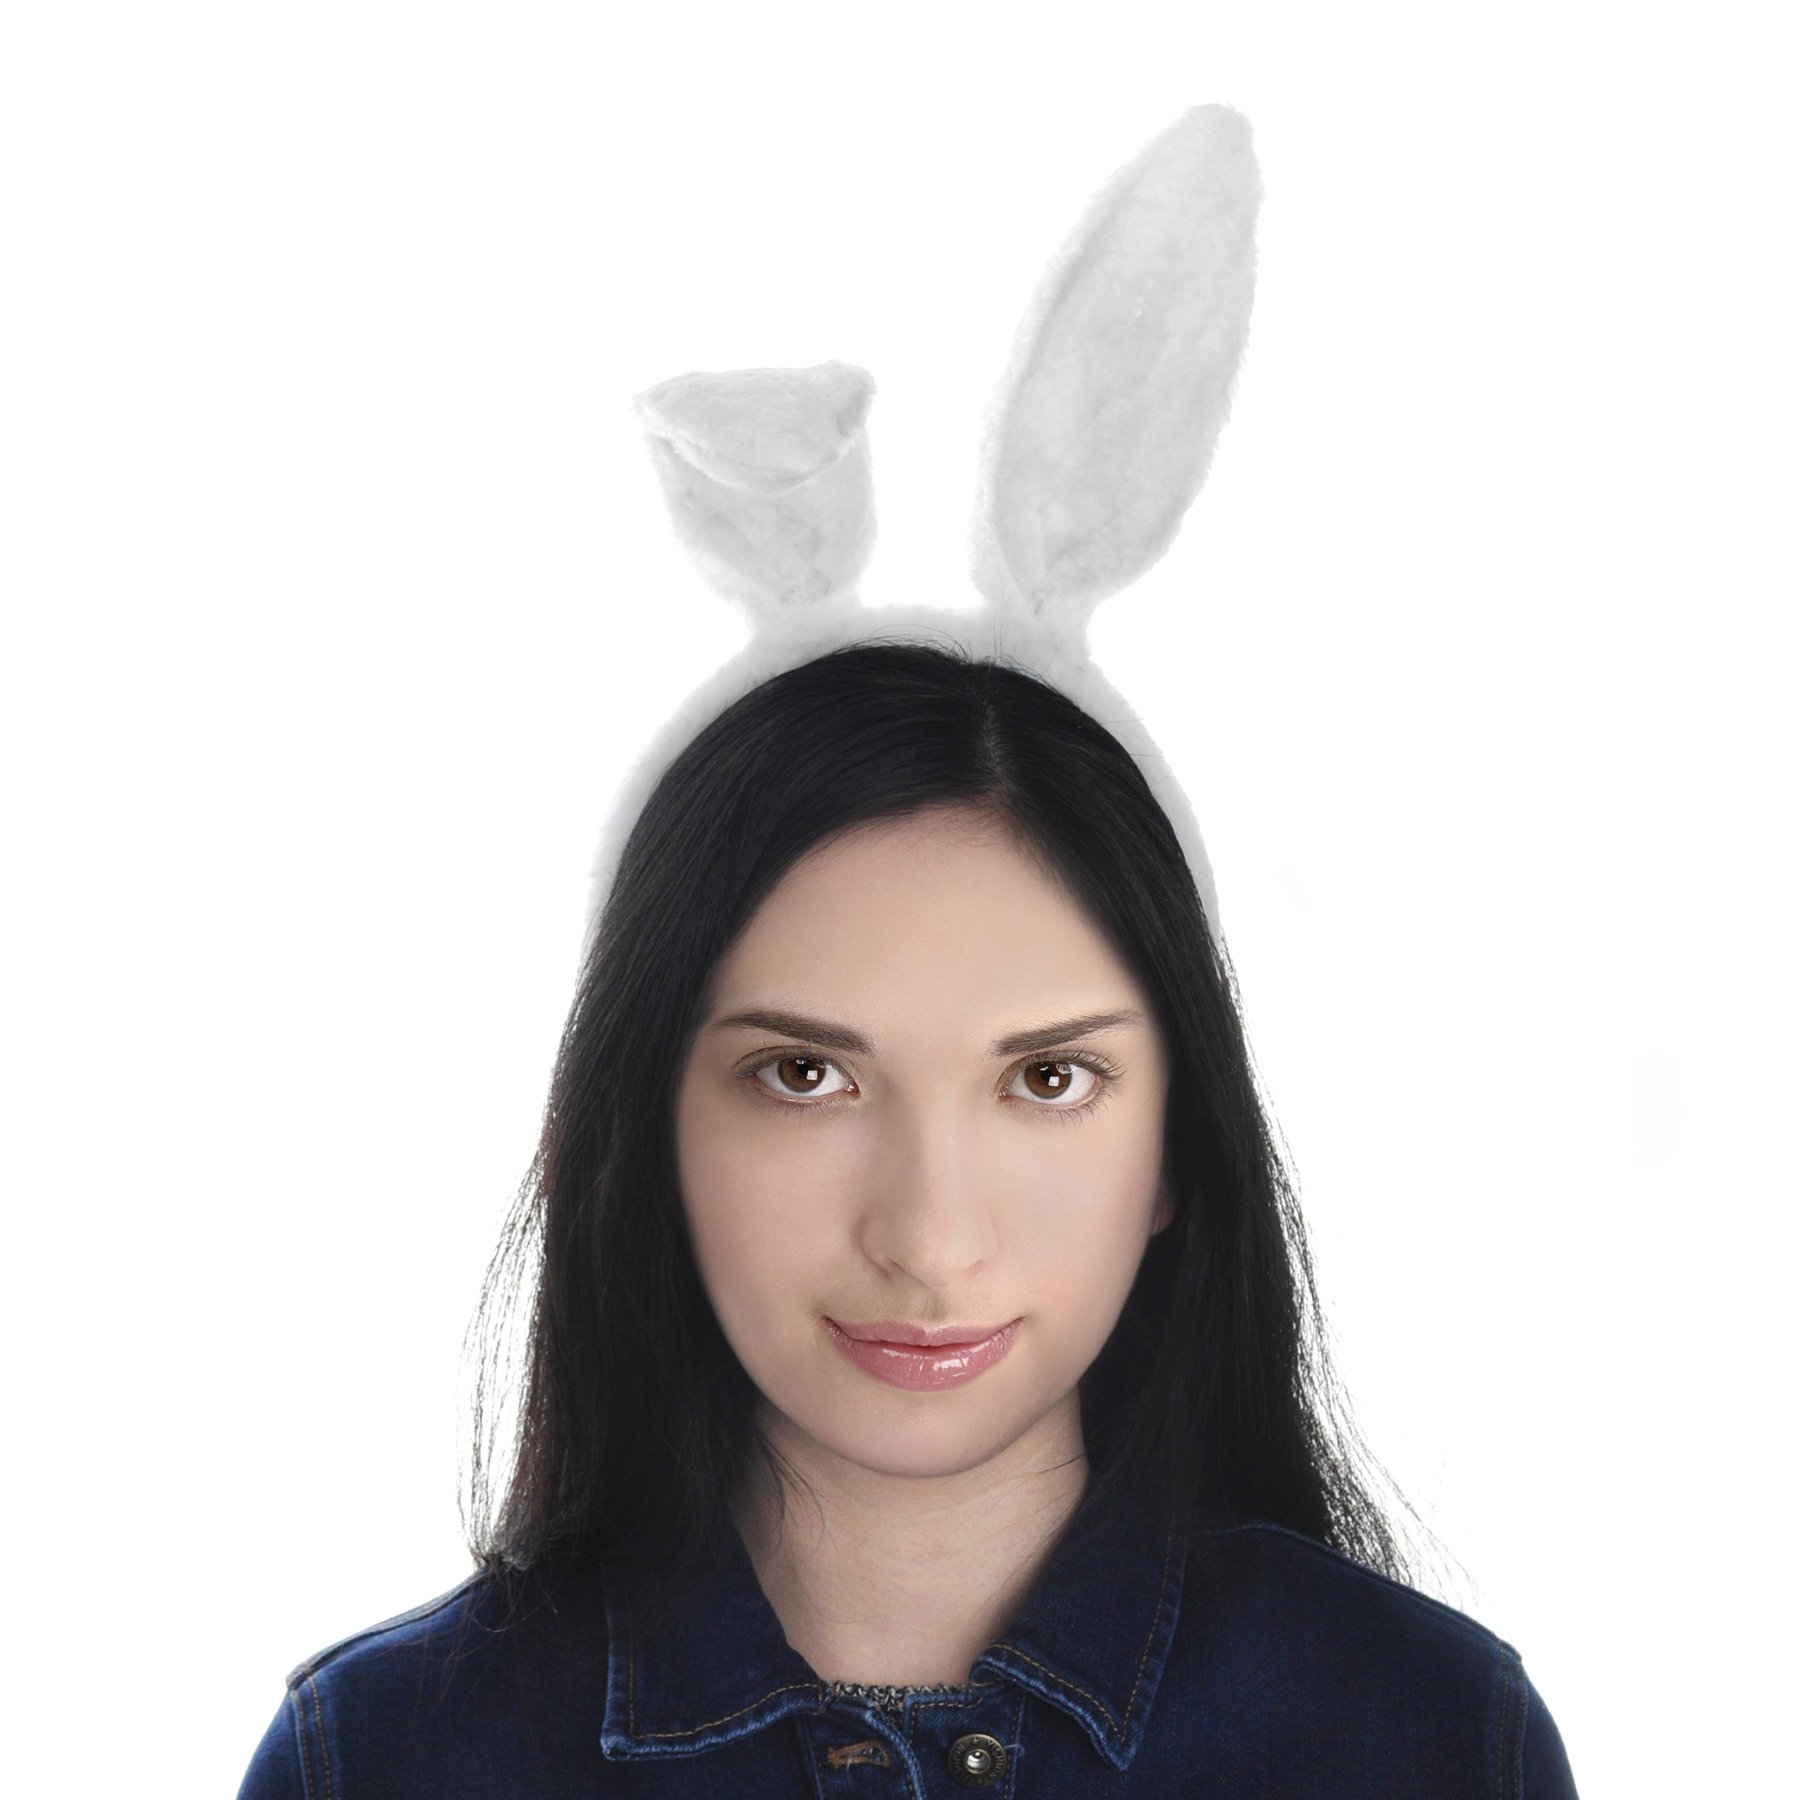 Toptie Easter Bunny Ears Headband, Soft Touch Plush Cosplay Party Suppliers-White-1pc by TOPTIE (Image #9)